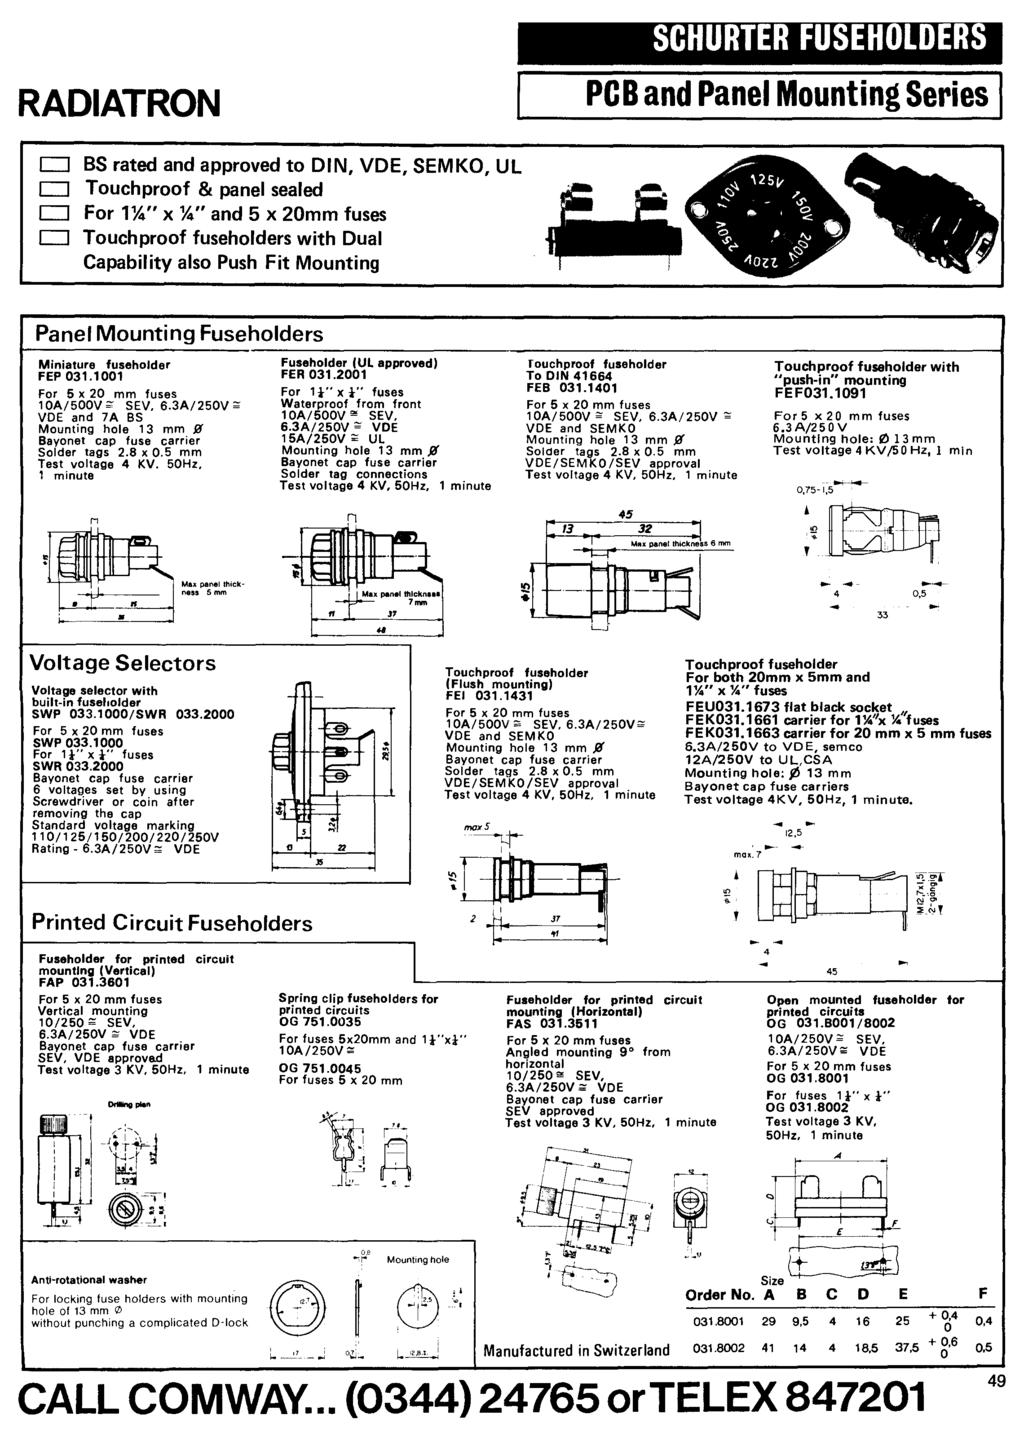 Comway Electronic Components Catalogue Electronics Limited Tenth 2g Fuse Box Layouts Merged 77 Cover Map Fuses Diagram Location Raatron Shurter Fuseholer Pb And Panel Mounting Series J Bs Rated Approved To N